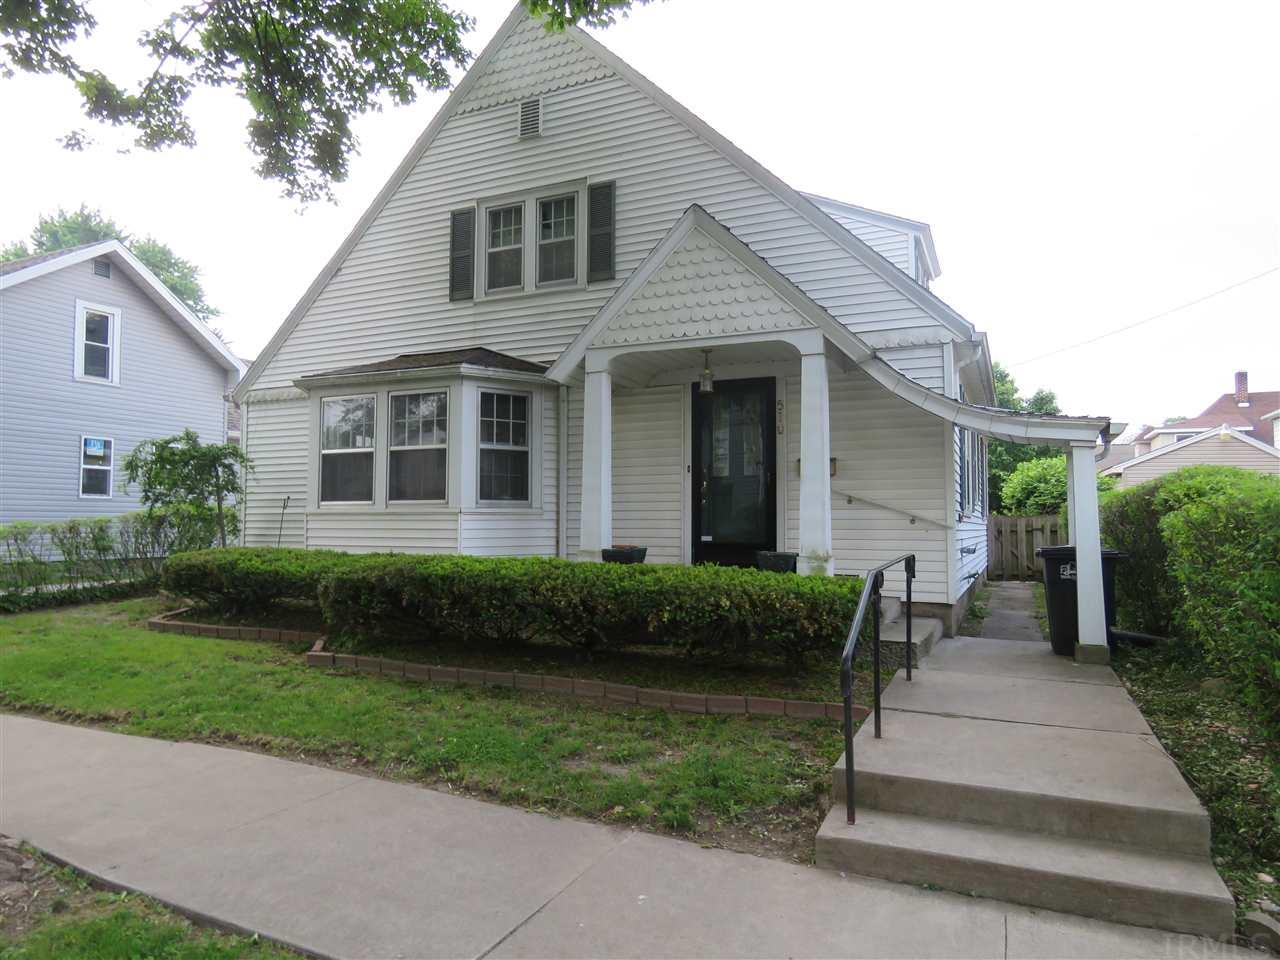 510 E Mitchell St., Kendallville, IN 46755